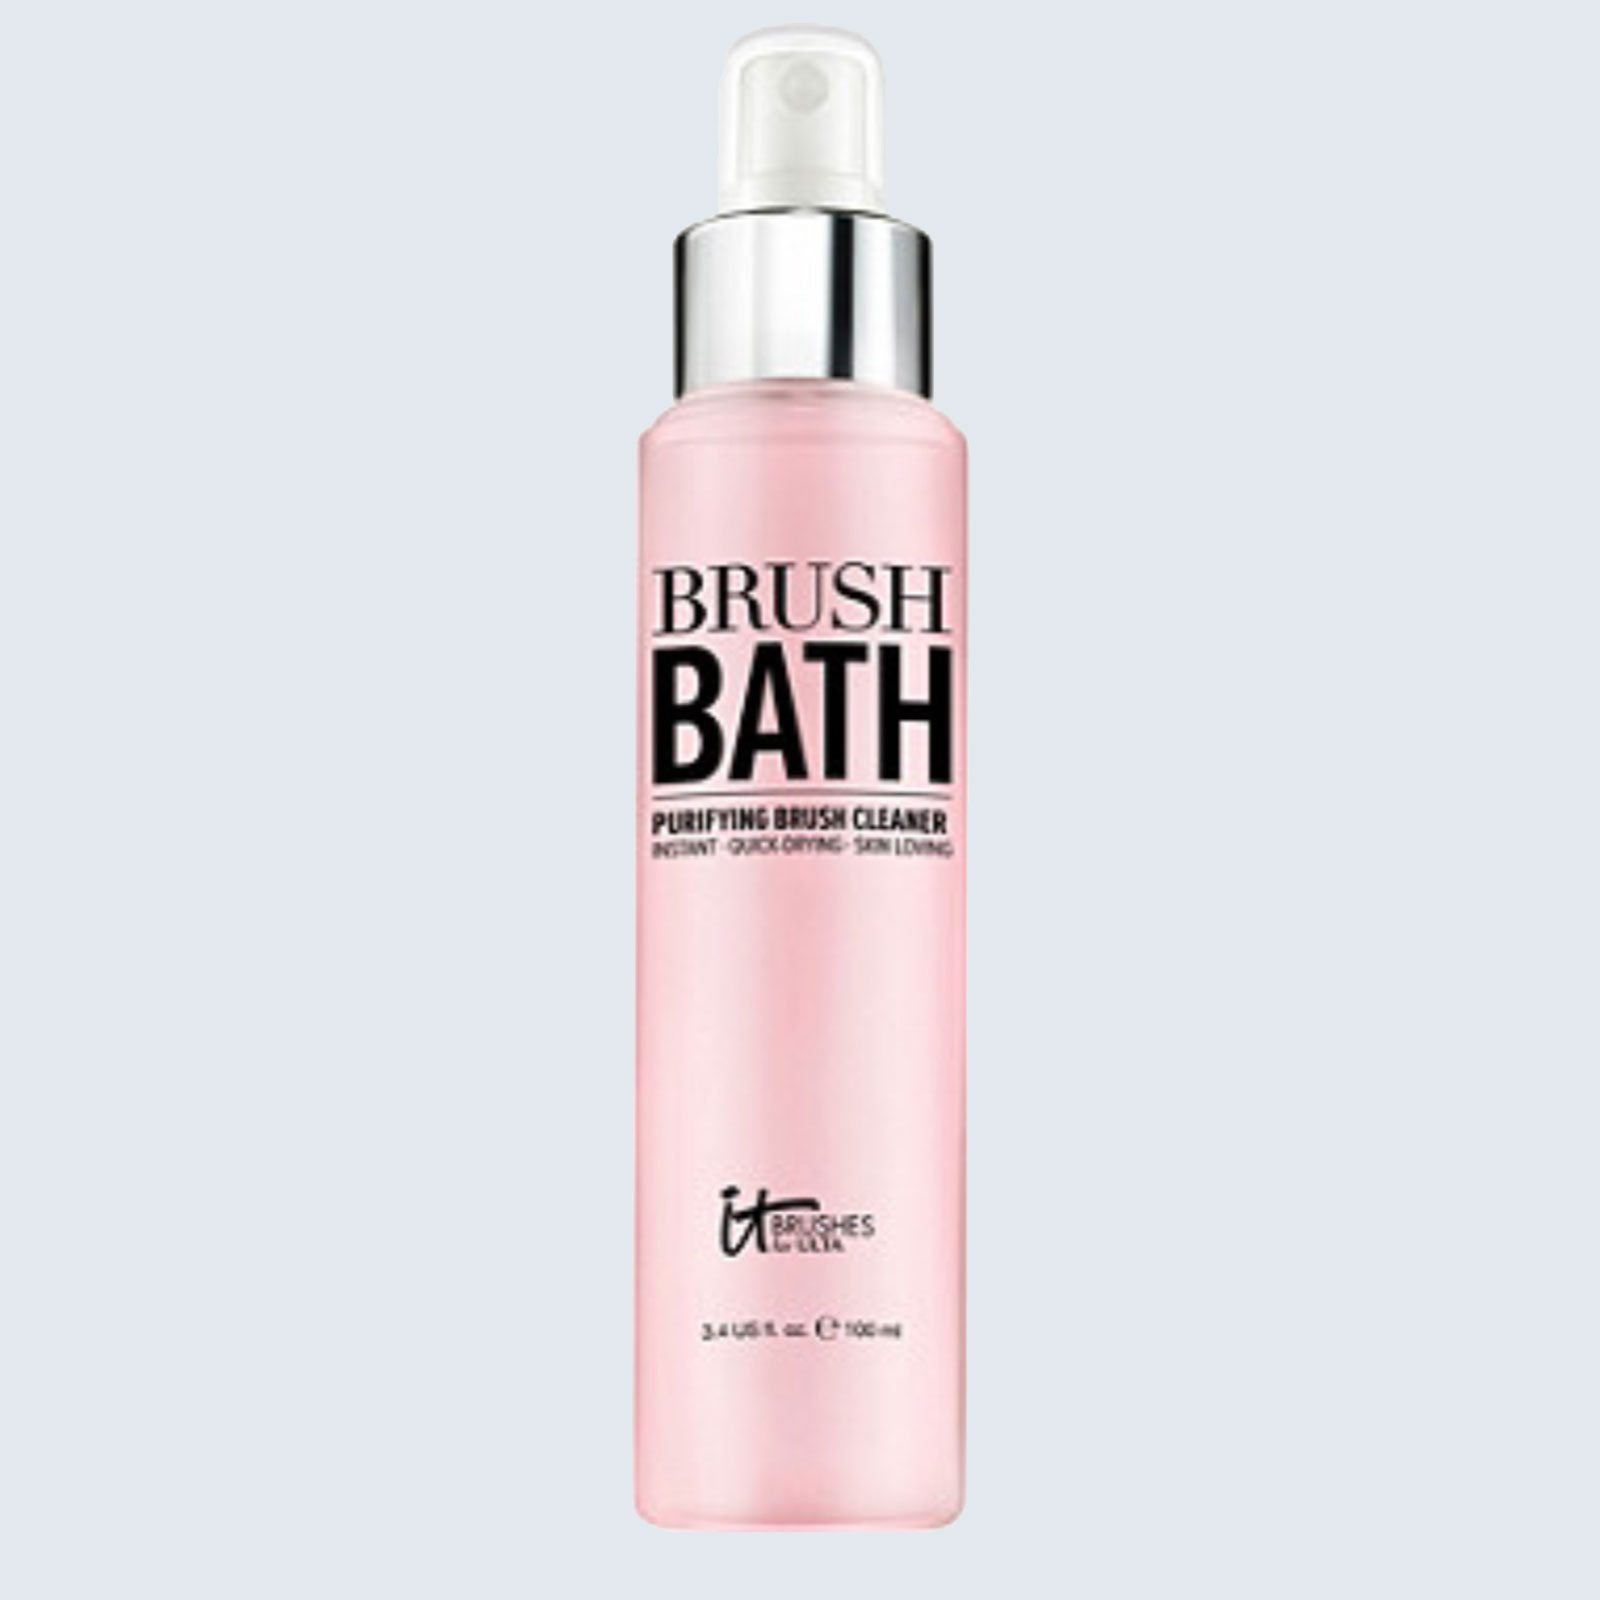 Best-smelling makeup brush cleaner: IT Brushes Brush Bath Purifying Makeup Cleaner